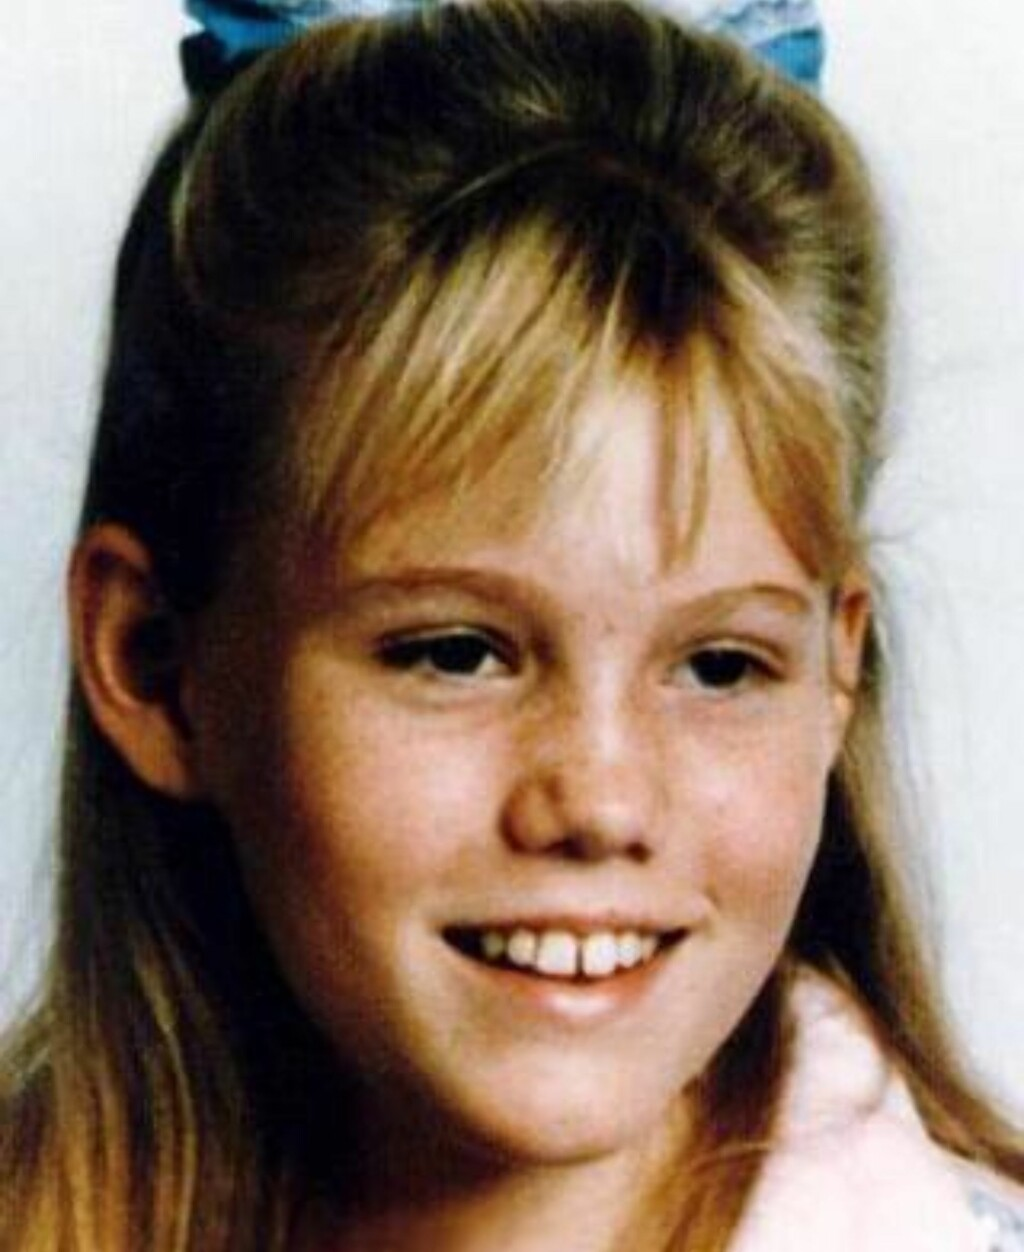 JAYCEE DUGARD: Jaycee Dugard ble i 1991 kidnappet, da var hun elleve år gammel. Nå er hun blitt 28 og har fått to barn med kidnapperen Phillip Garrido, som også mistenkes for flere drap. REUTERS/via Child Quest/Handout/Scanpix